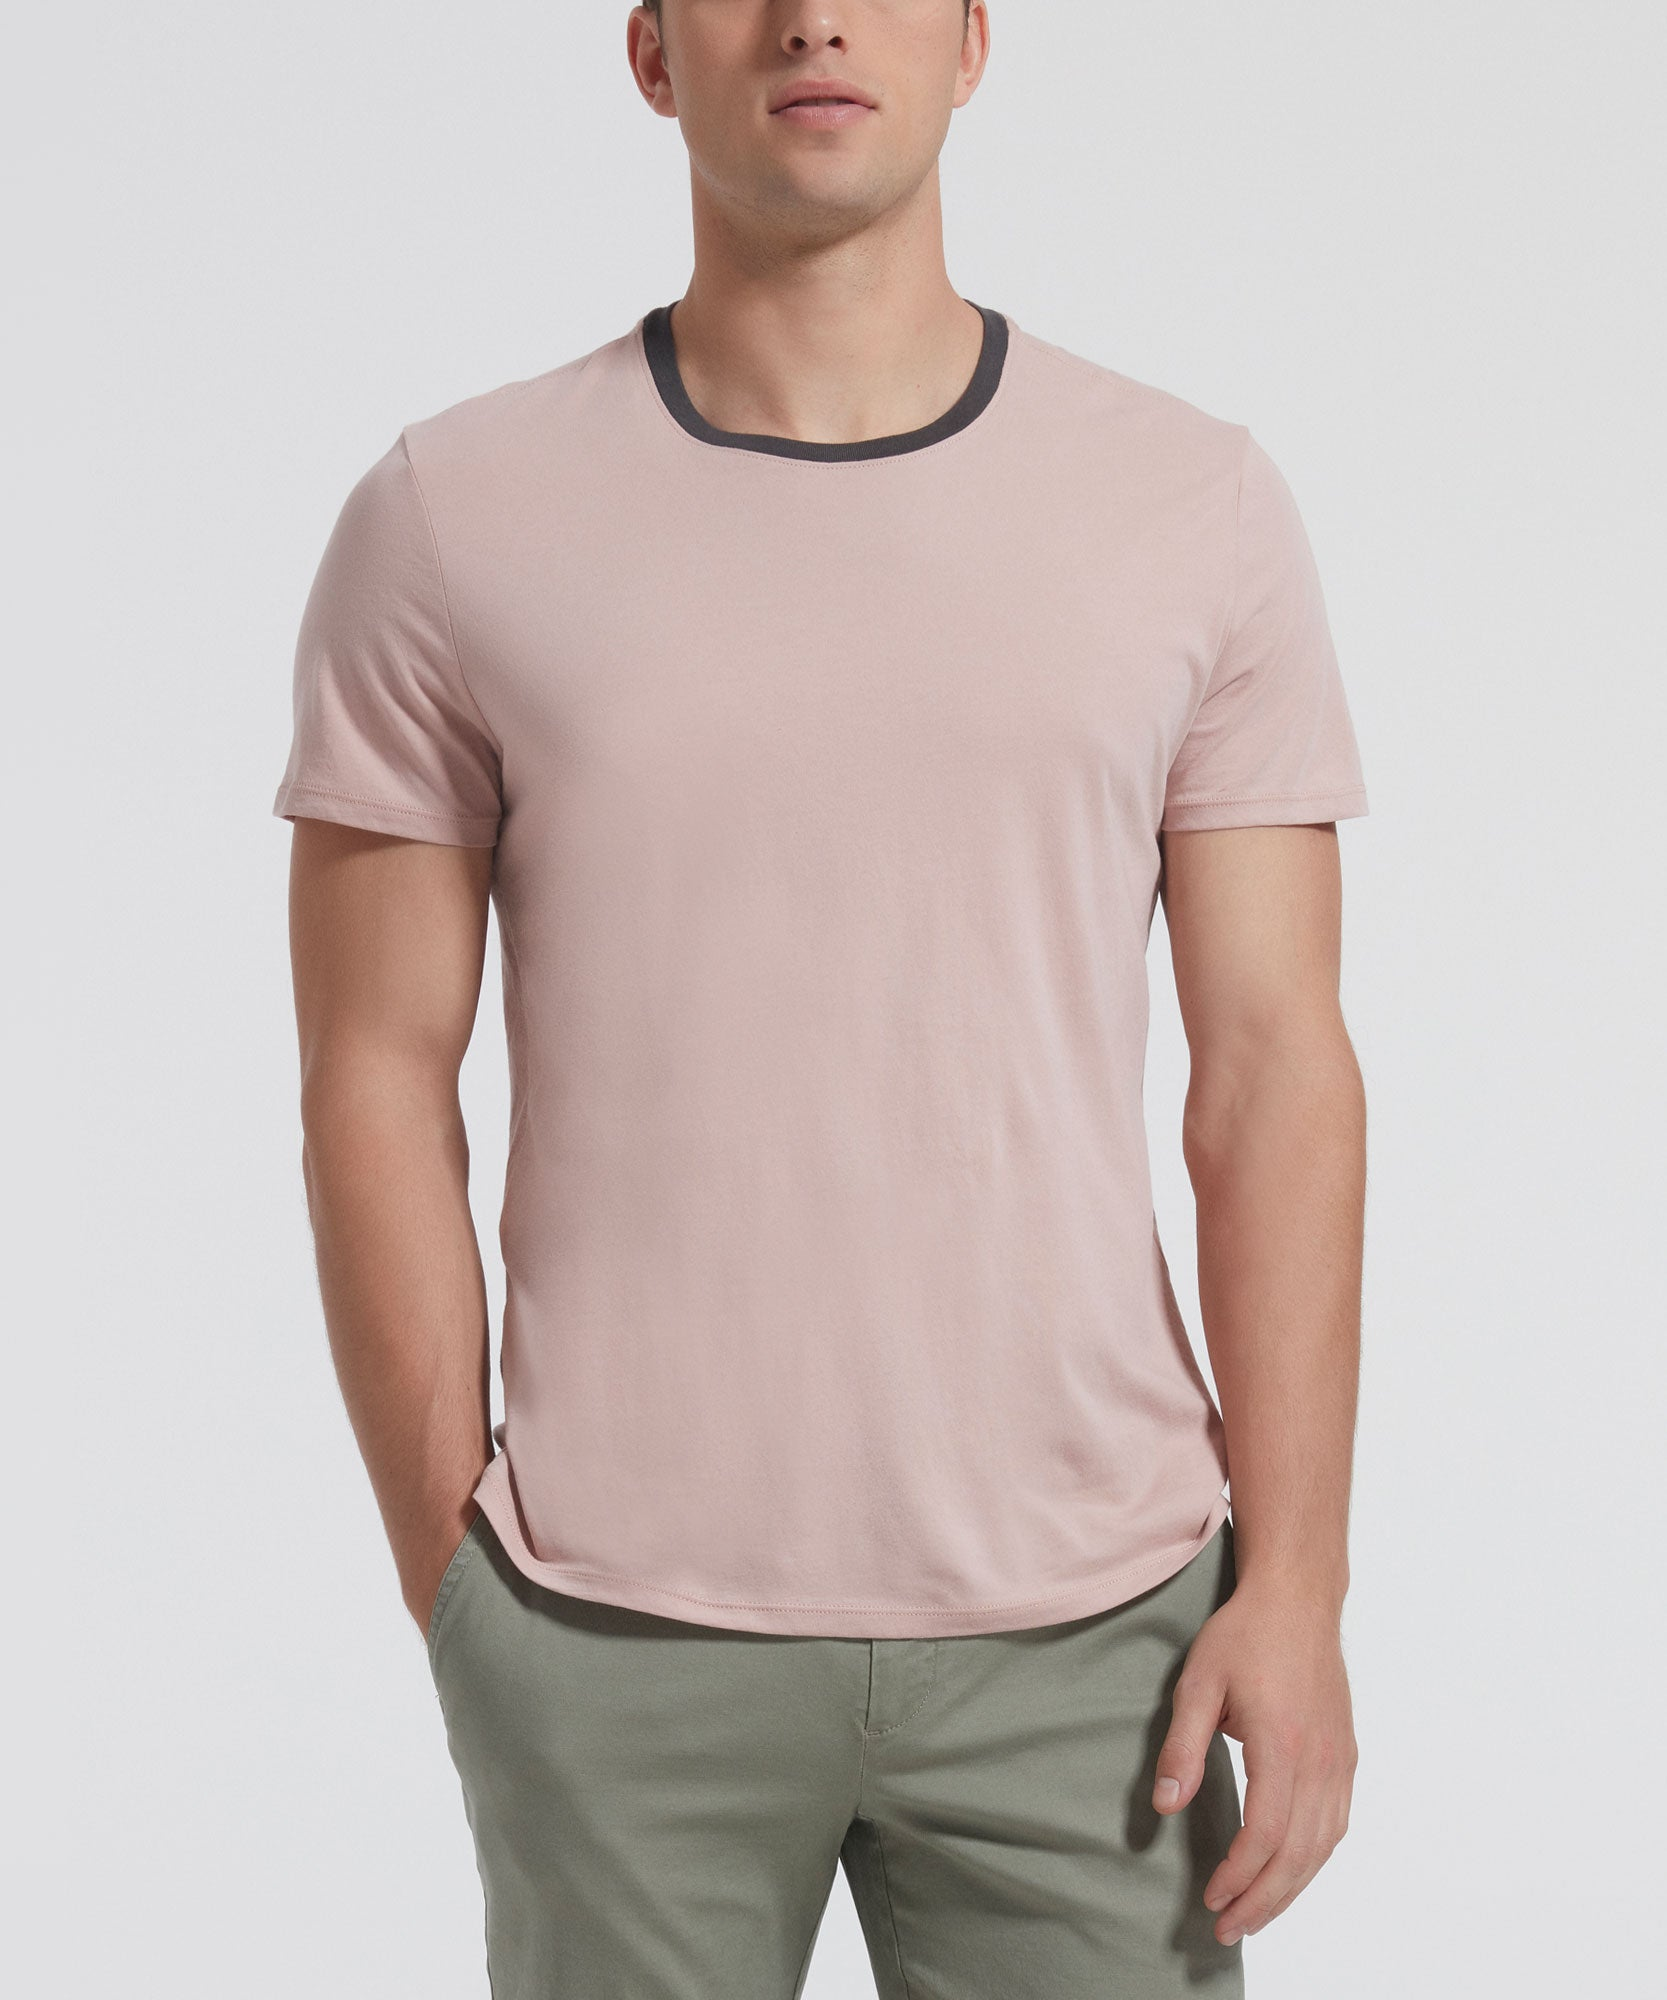 Adobe Classic Jersey Contrast Band Crew Neck Tee - Men's Luxe Cotton Tee by ATM Anthony Thomas Melillo